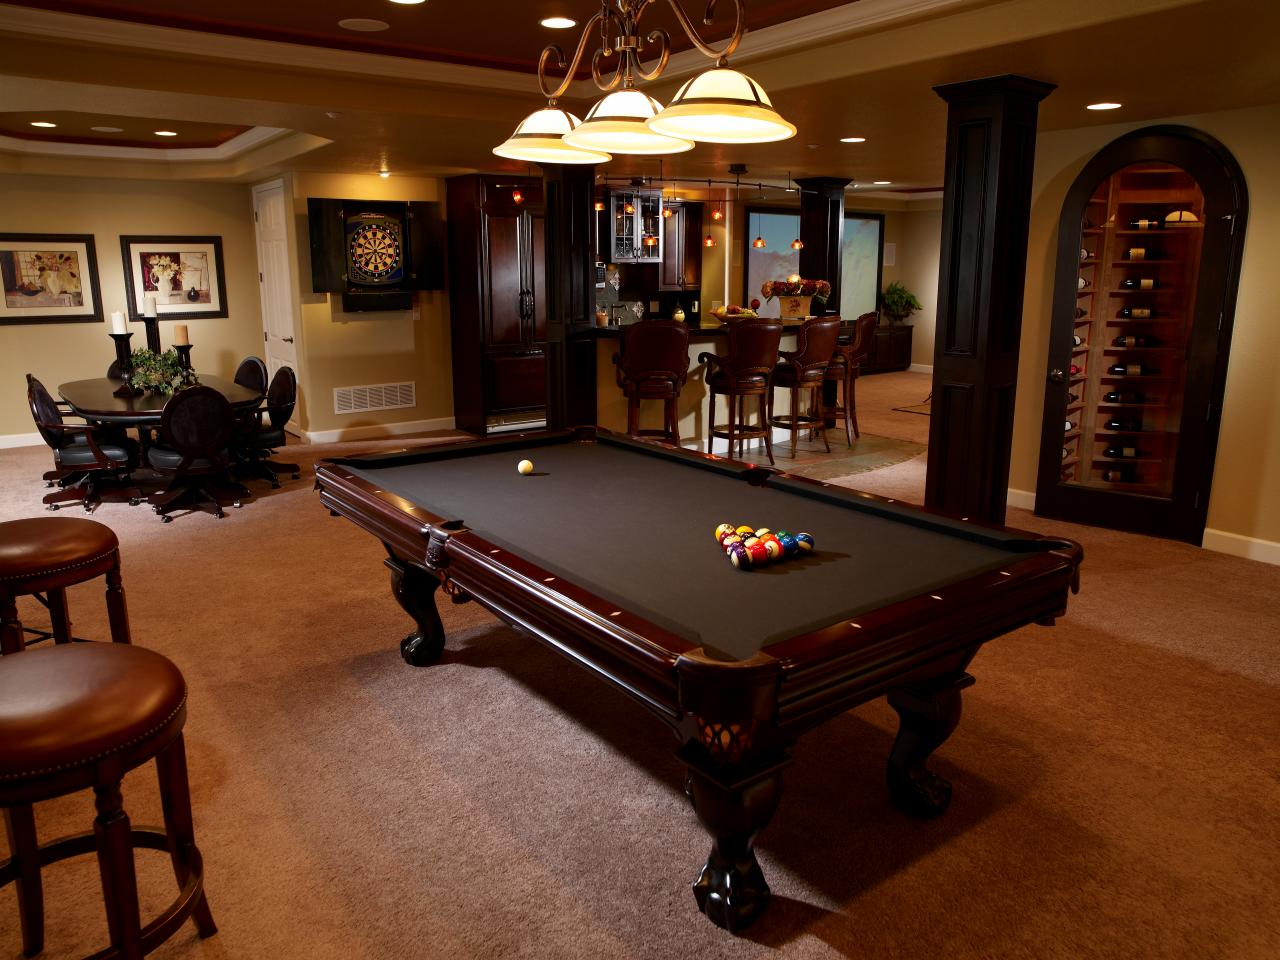 Captivating Basement Wit Billiard Table Under Bowl Shade Pendant Light Fixture